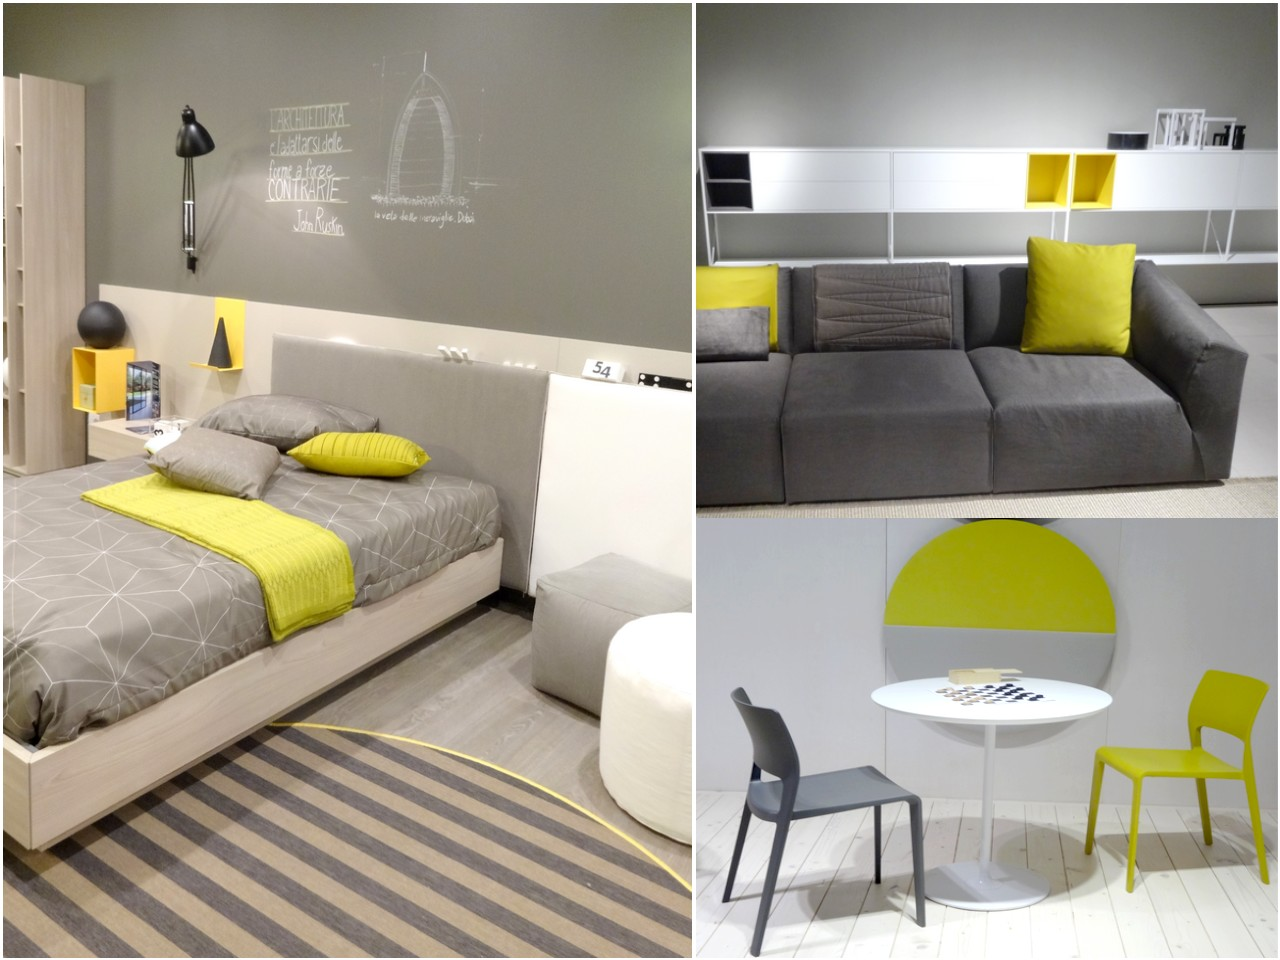 Tendencias decoraci n 2015 2016 mil n siempre sorprende for Tendencia decoracion interiores 2016